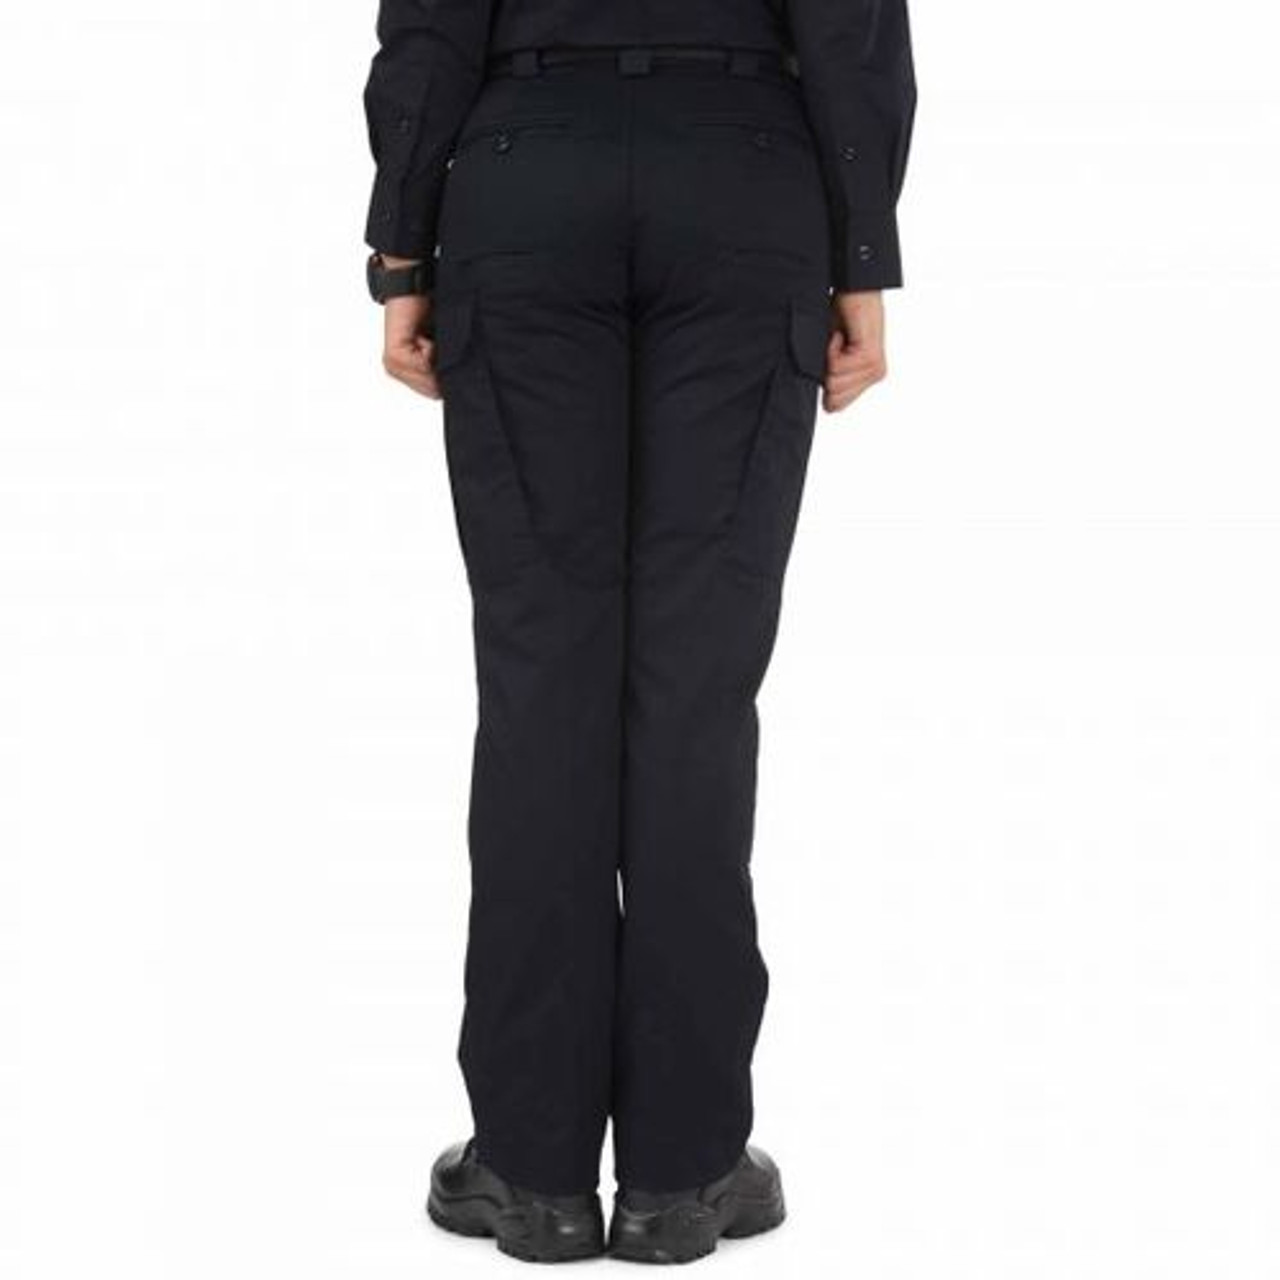 5.11 Tactical 64306 Women's Twill PDU Class-B Uniform Cargo Pants, Adjustable Waistband, Polyester/Cotton, Available in Black, Sheriff's Green, or Midnight Navy